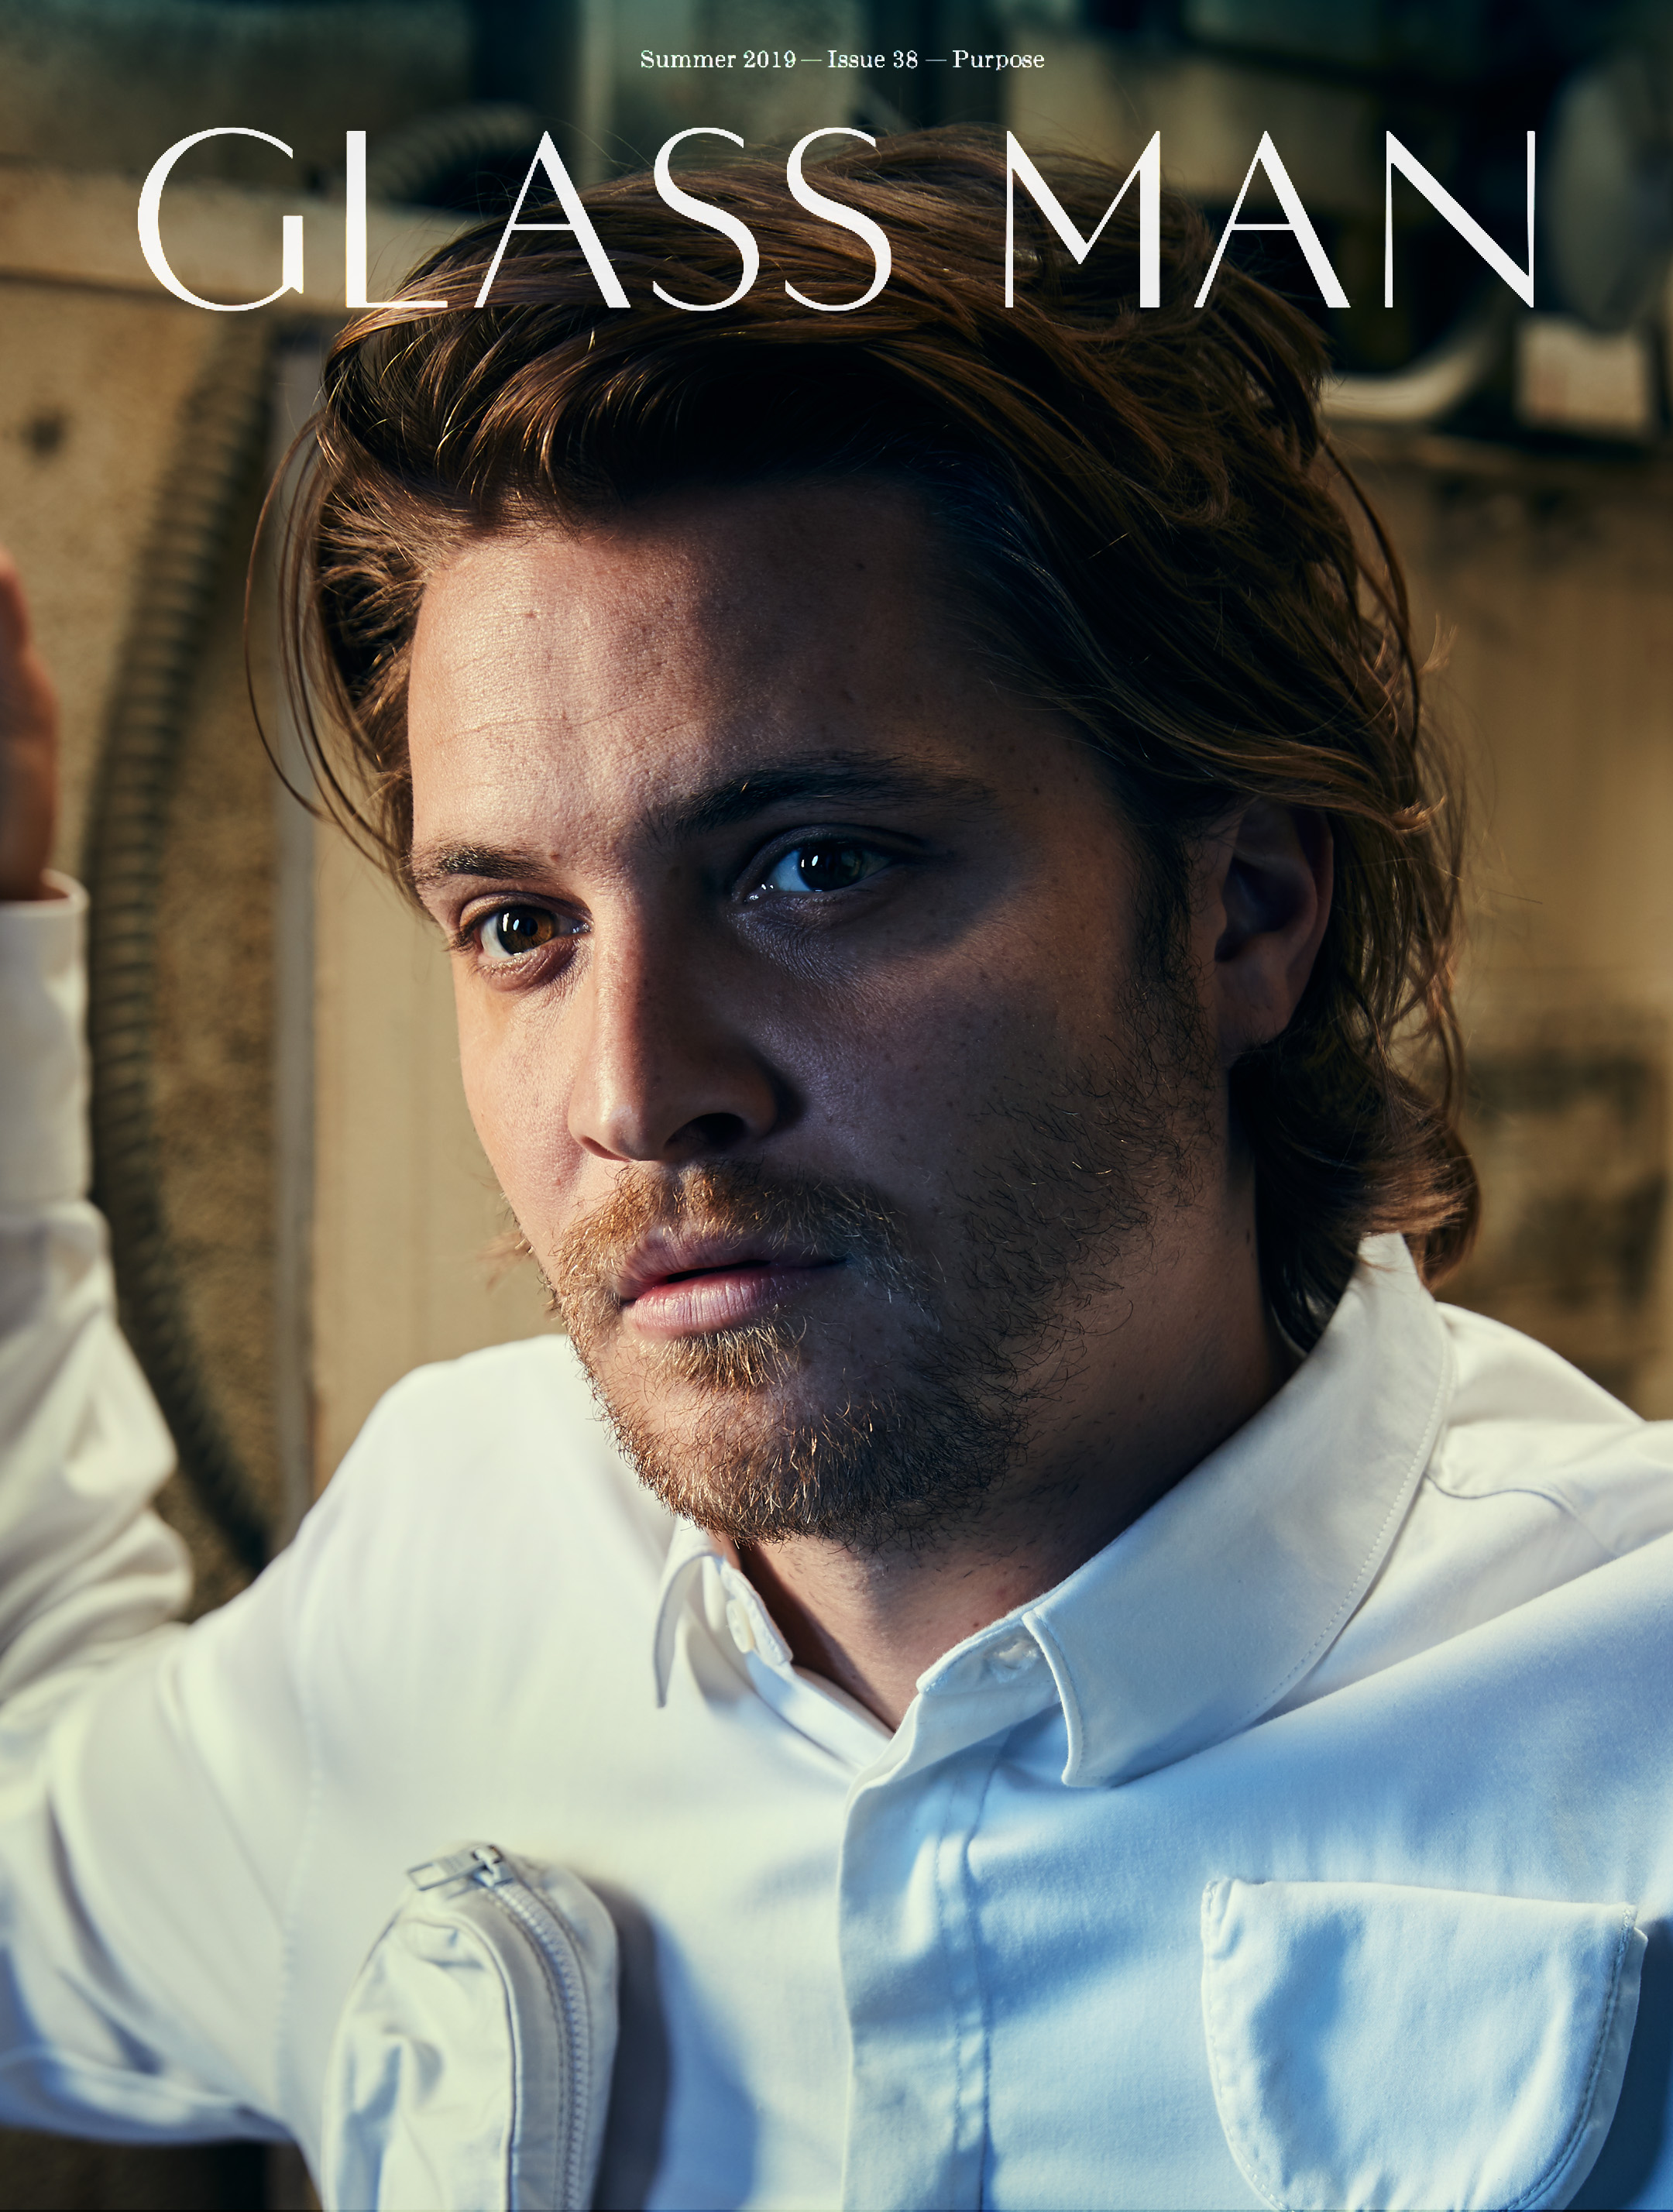 GlassMan-LukeGrimes-Cover-byRobert-Ascroft